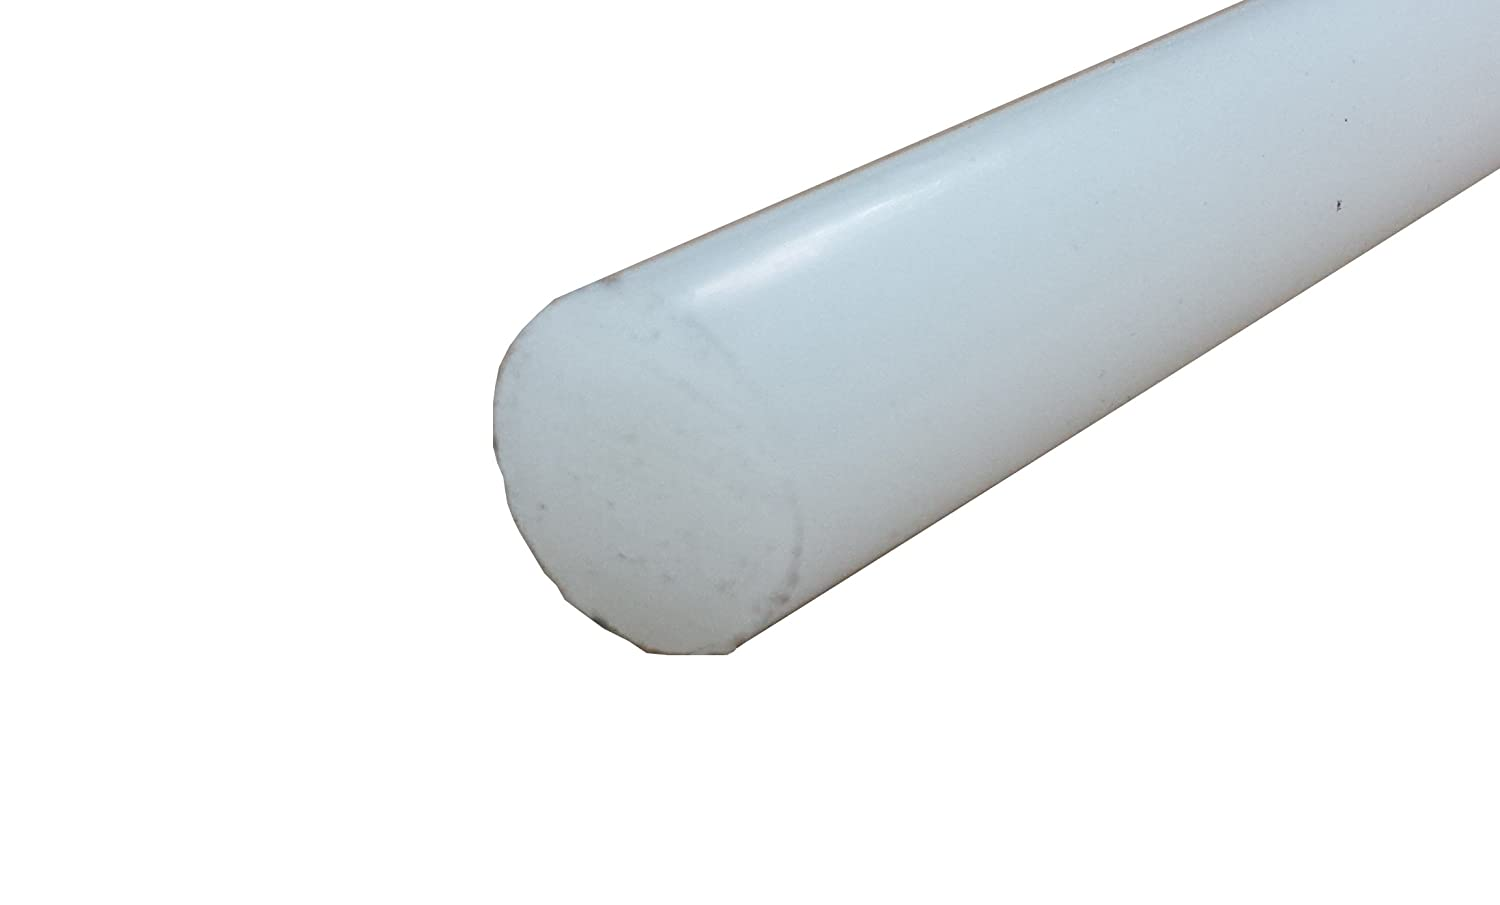 Polypropylene Round Rod - Natural Diamete New product type Recommendation x 0.5625